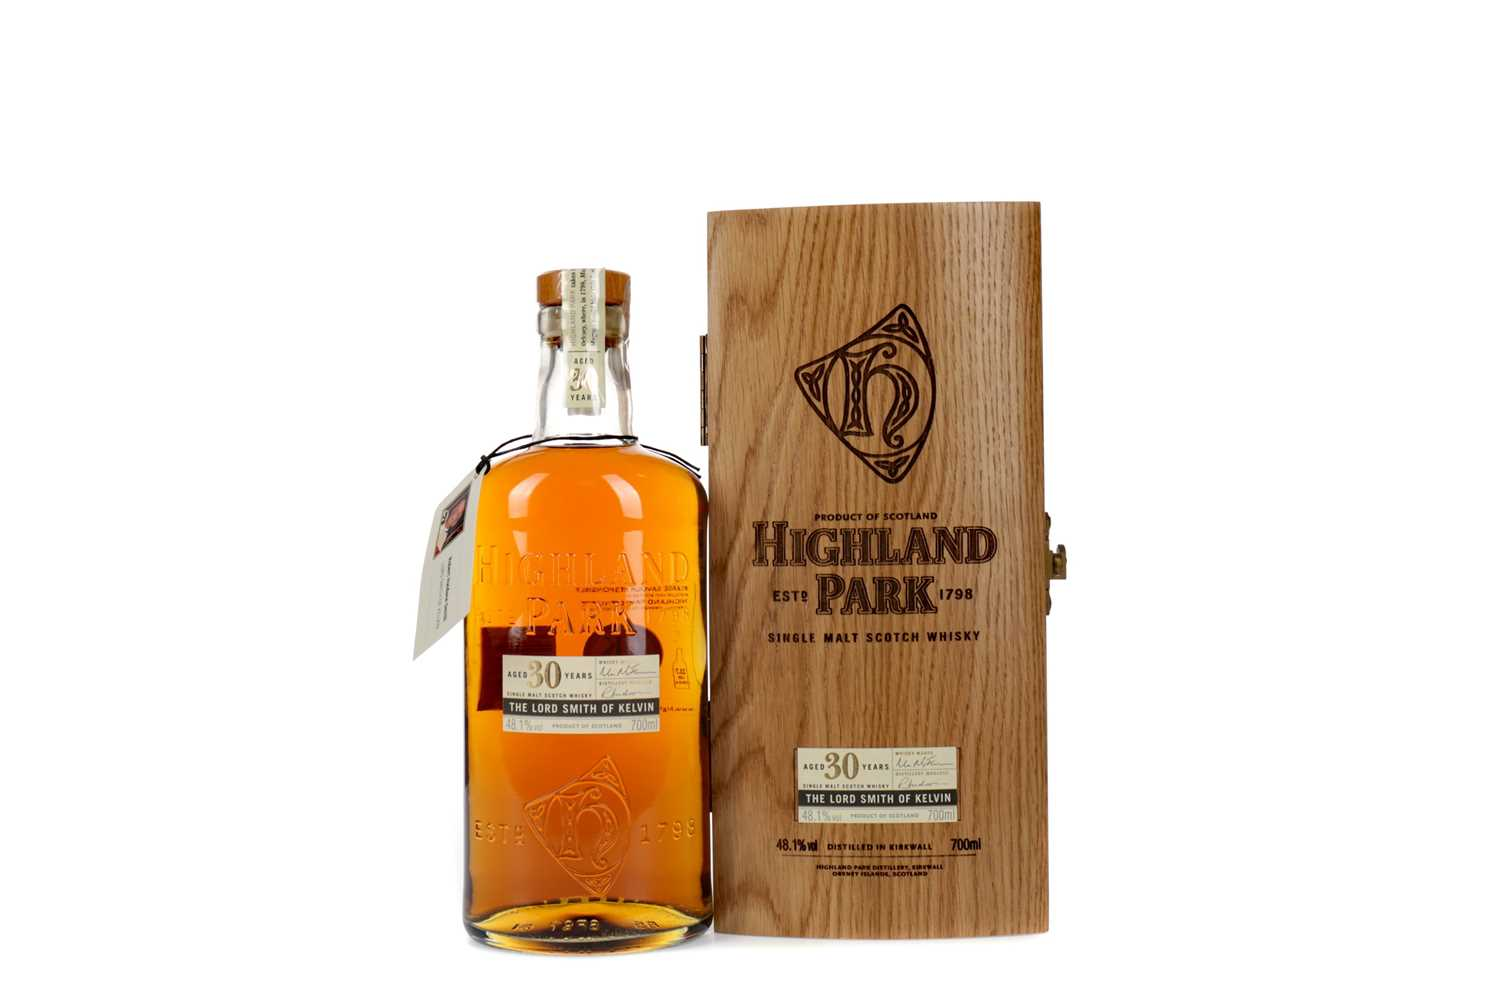 Lot 61 - HIGHLAND PARK THE LORD SMITH OF KELVIN AGED 30 YEARS